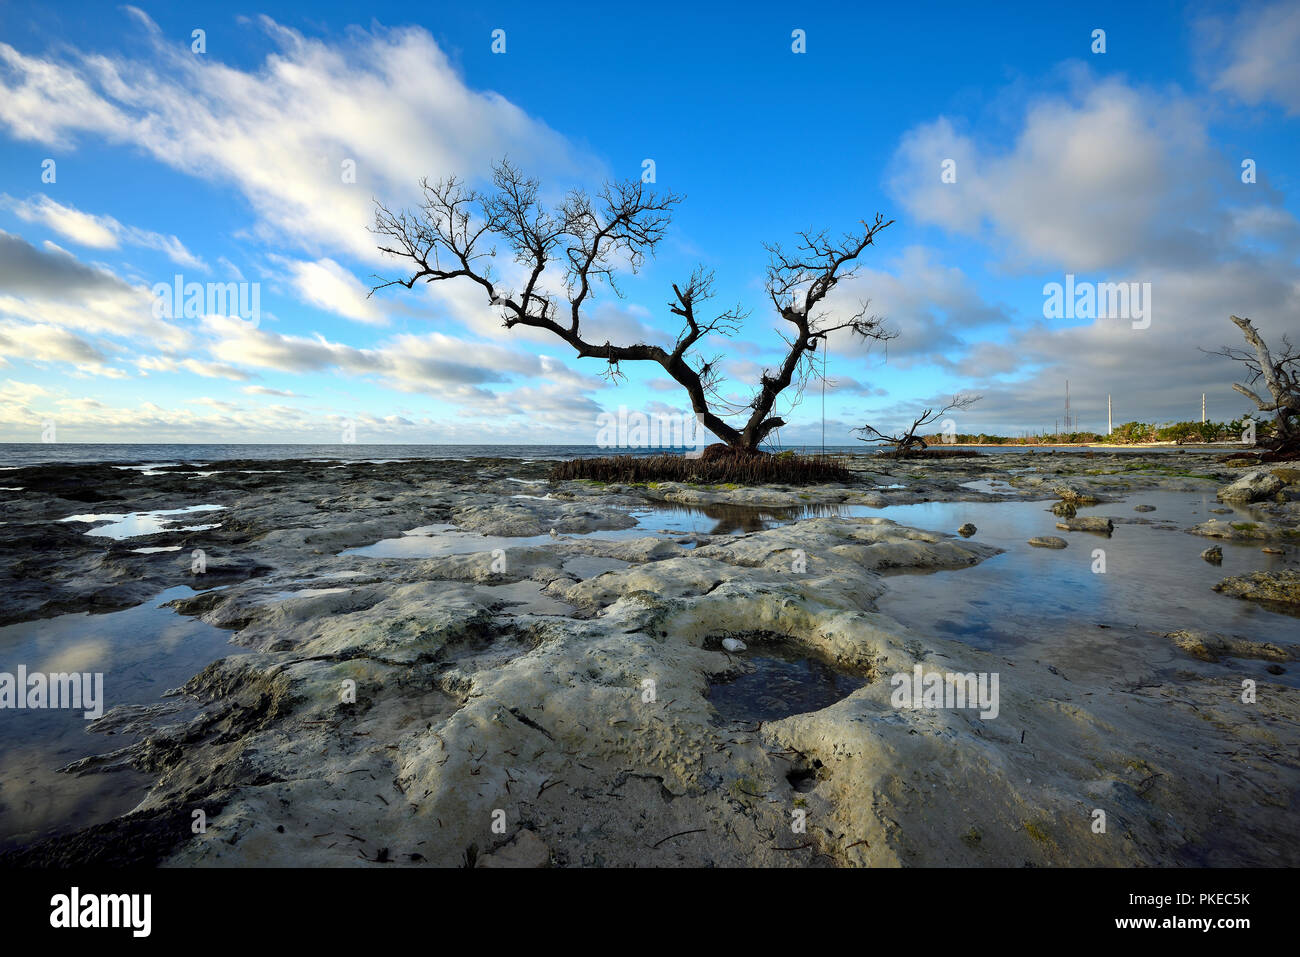 Dead Tree in the midst of an eerie landscape at sunrise on